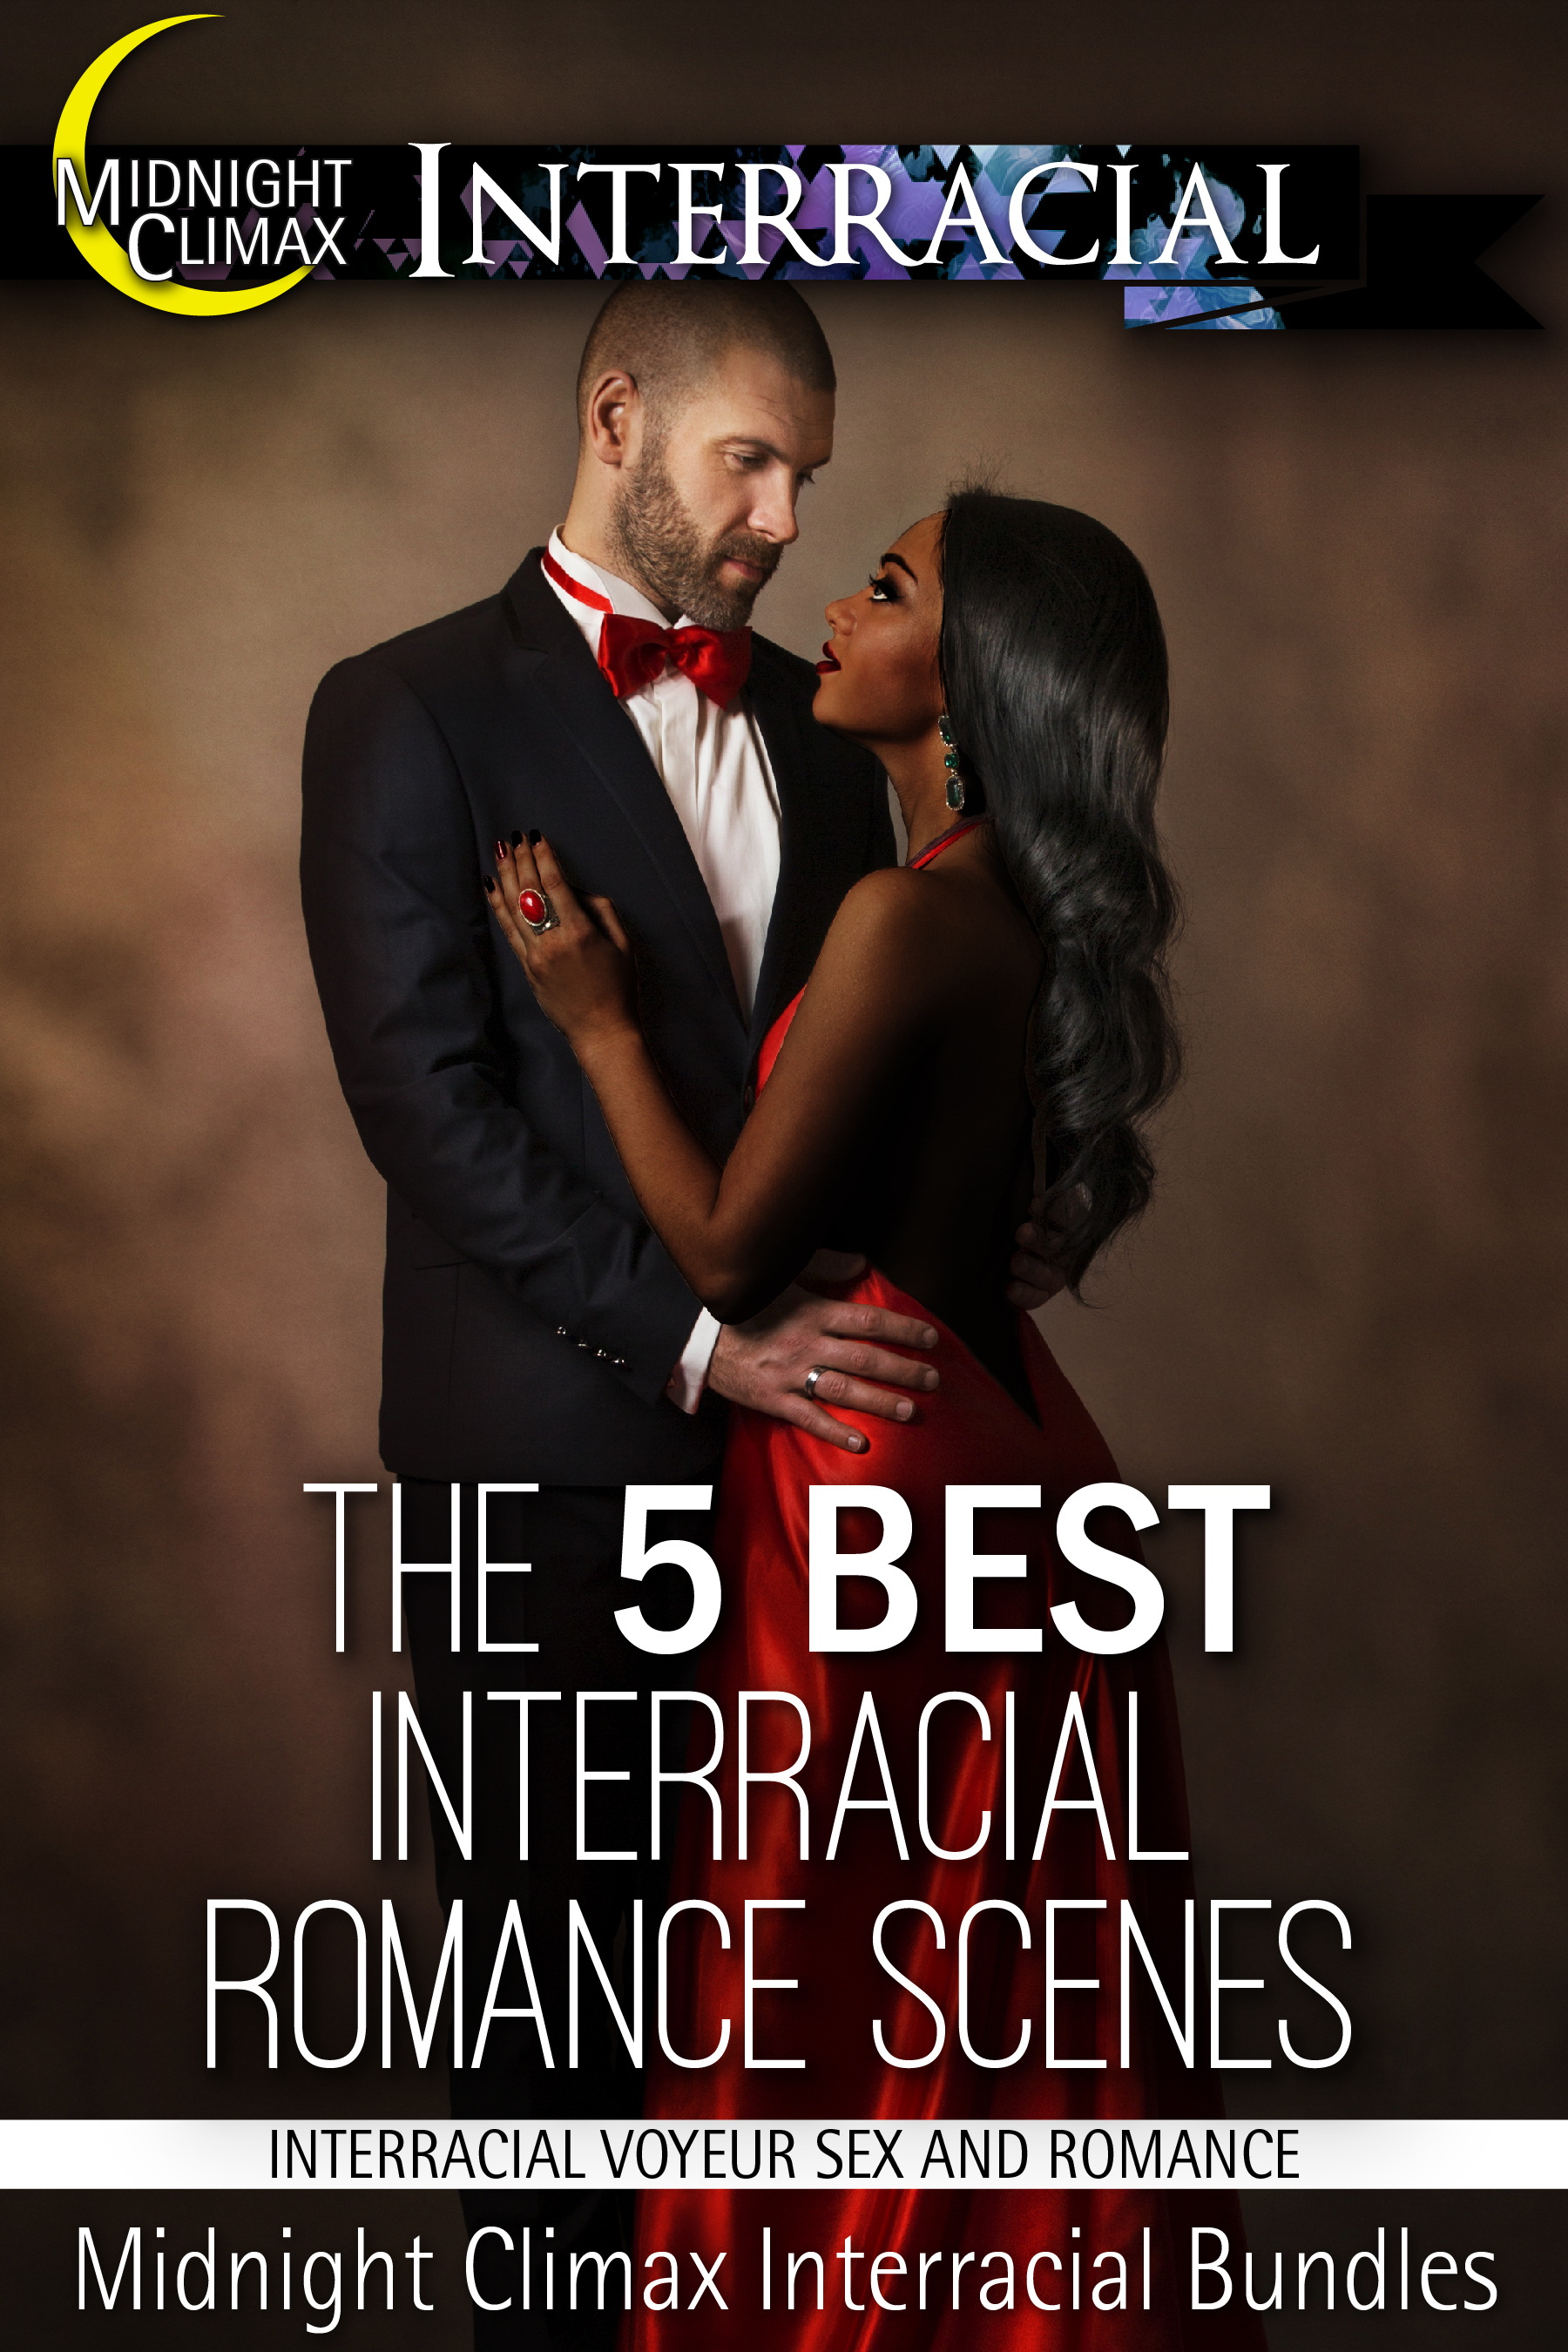 The 5 Best Interracial Romance Scenes Midnight Climax Interracial Bundles